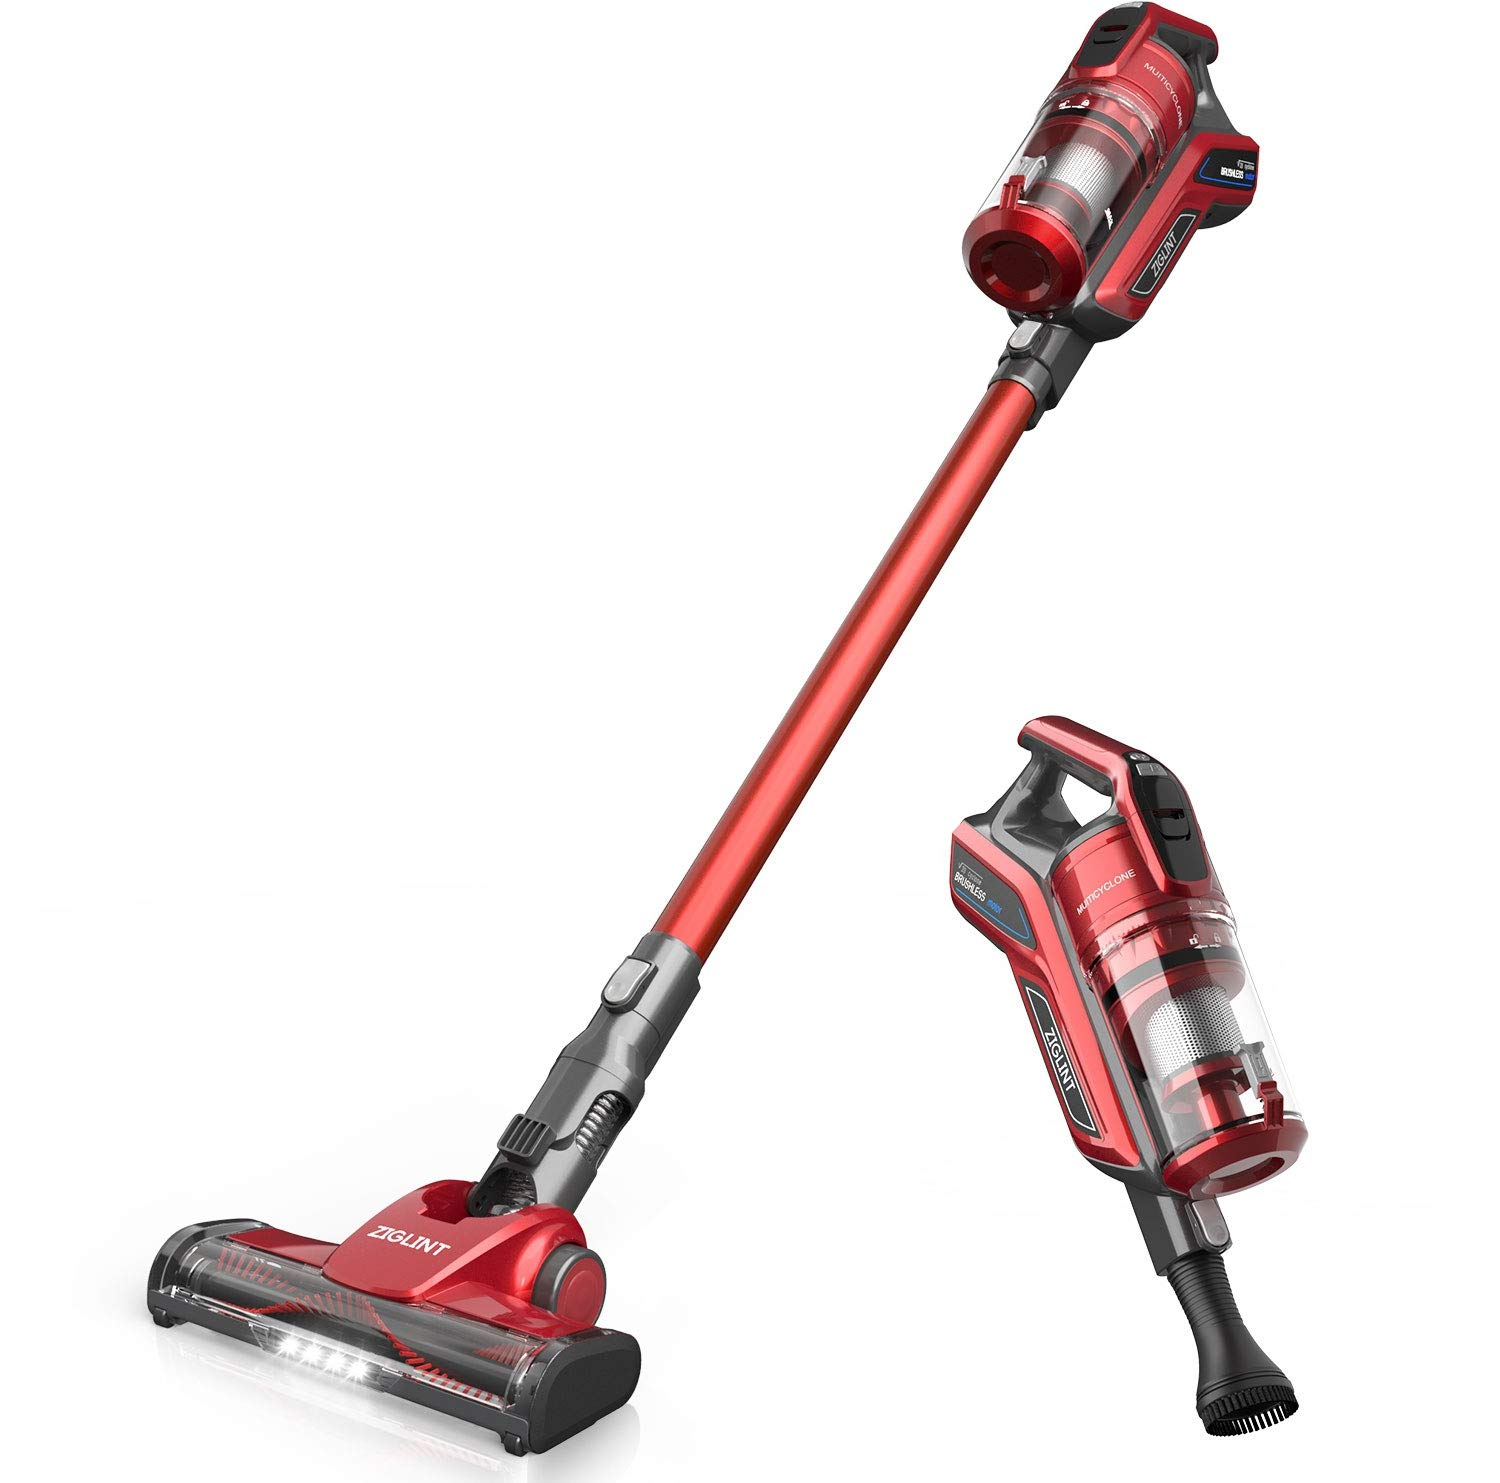 ZIGLINT Z8 Cordless Vacuum Cleaner, Stick and Handheld Vacuum Handheld Lightweight Intelligent with 20KPa High Suction, LED Power Brushes, 5 Head Tool Accessories Included 2 Year Warranty